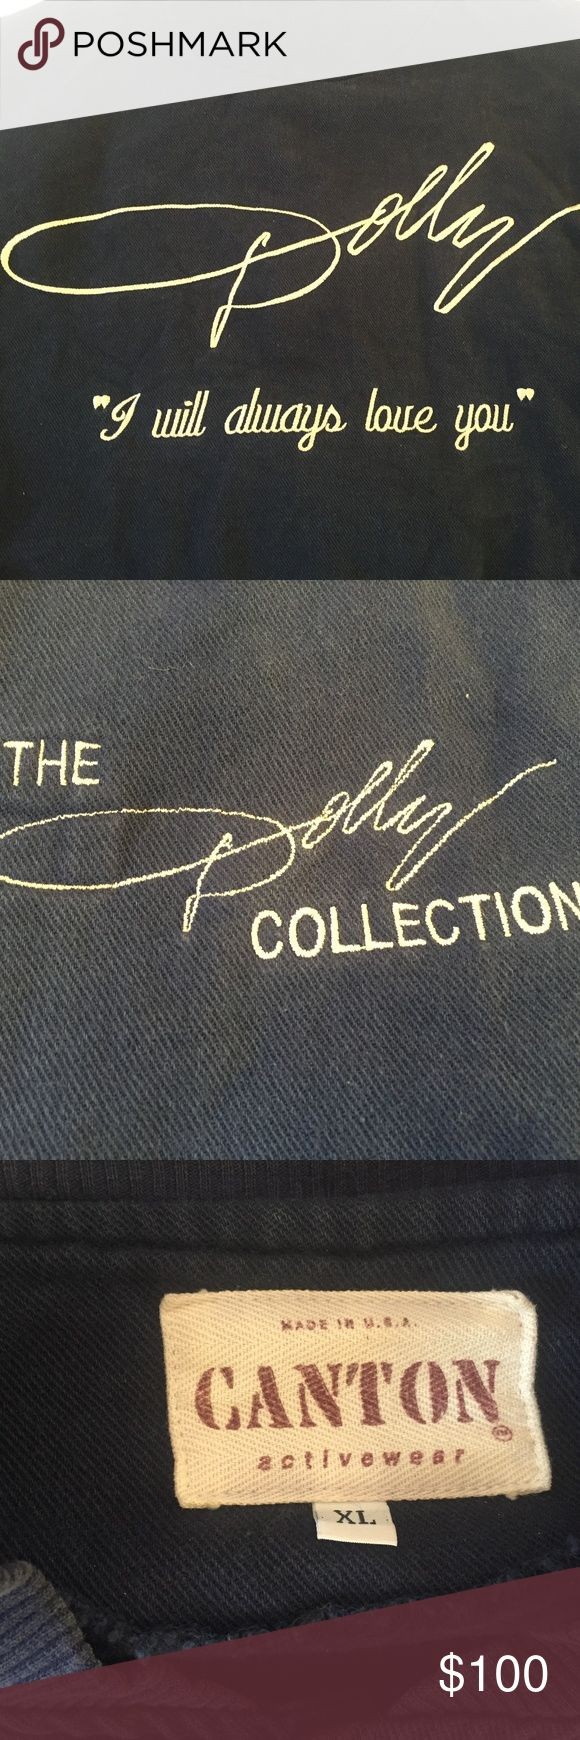 Vintage Dolly Parton Jacket Vintage Women's Dolly Parton Jacket. Sleeves has a bit of staining from the blue parts of the jacket. Canton Activewear Jackets & Coats